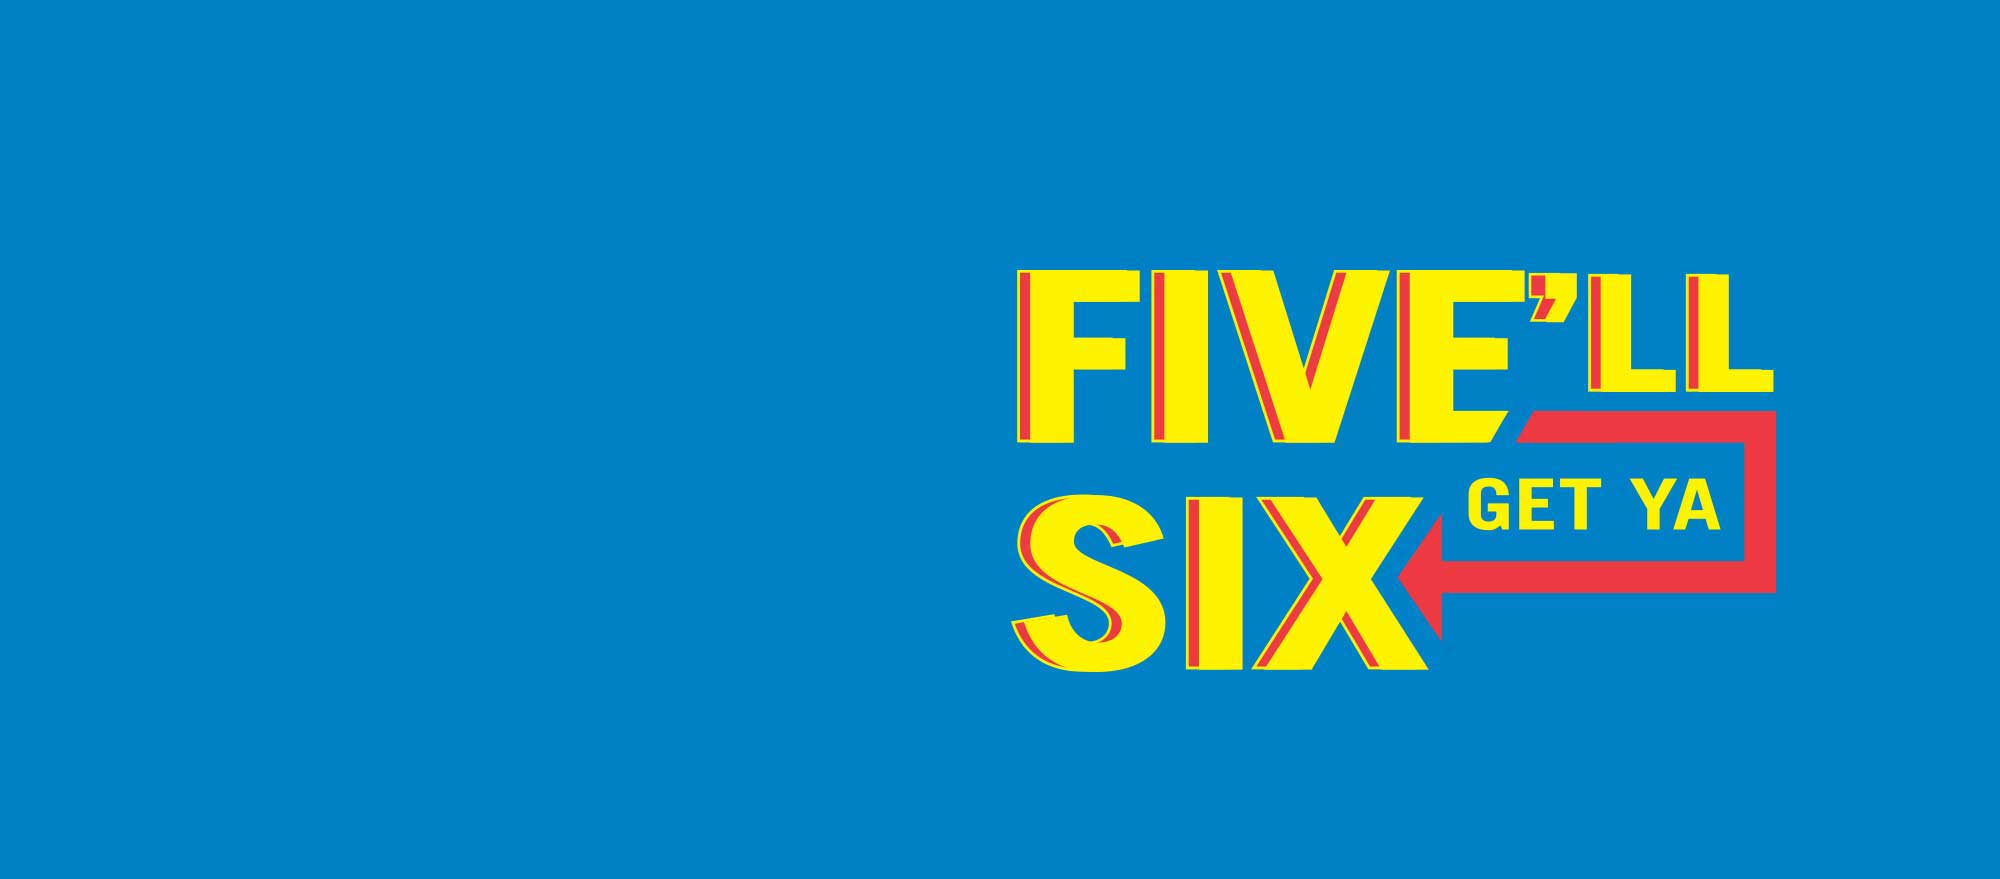 SuperCash! Five'll Get Ya Six limited time offer in September